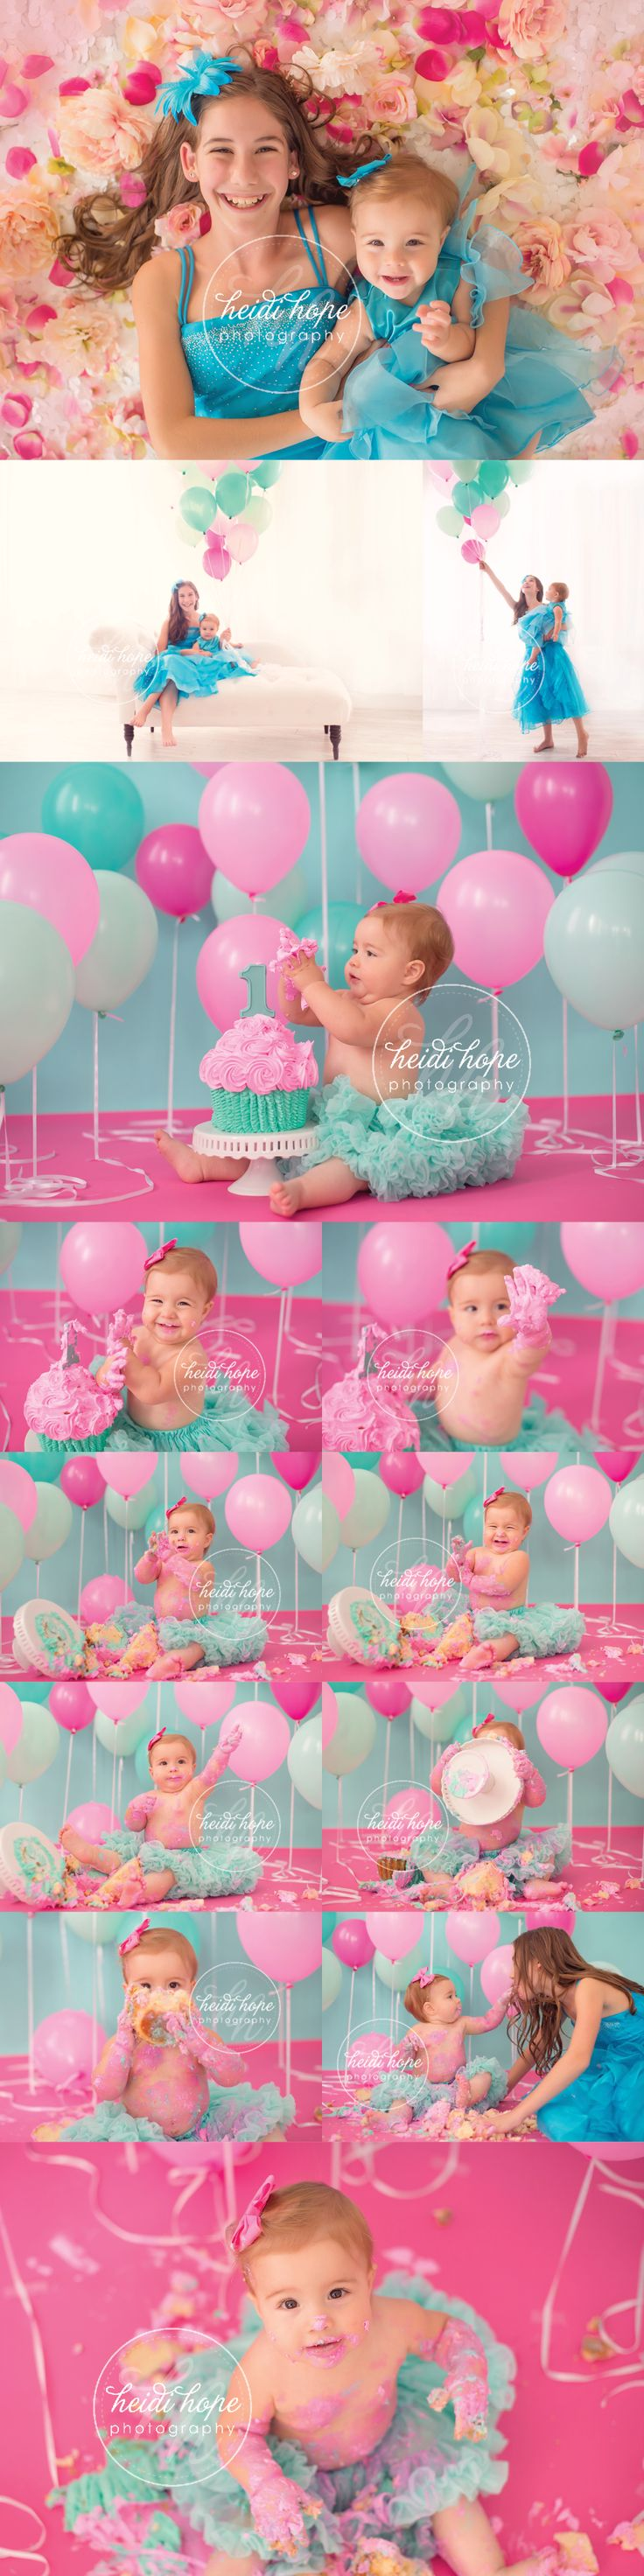 Hot pink, light pink, turquoise, mint, backlit balloons! Love the cake too!!!